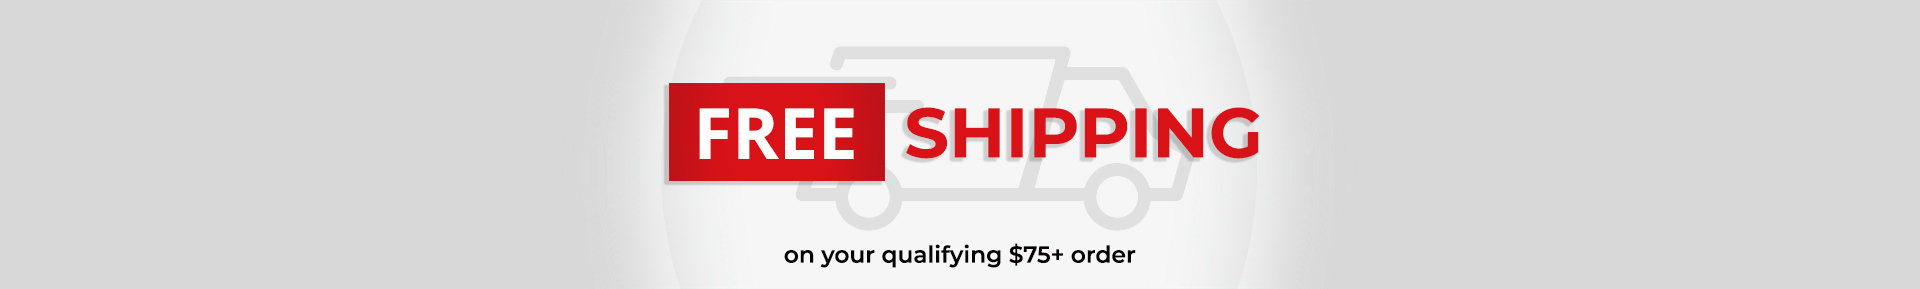 Free Shipping on your qualifying $75+ order